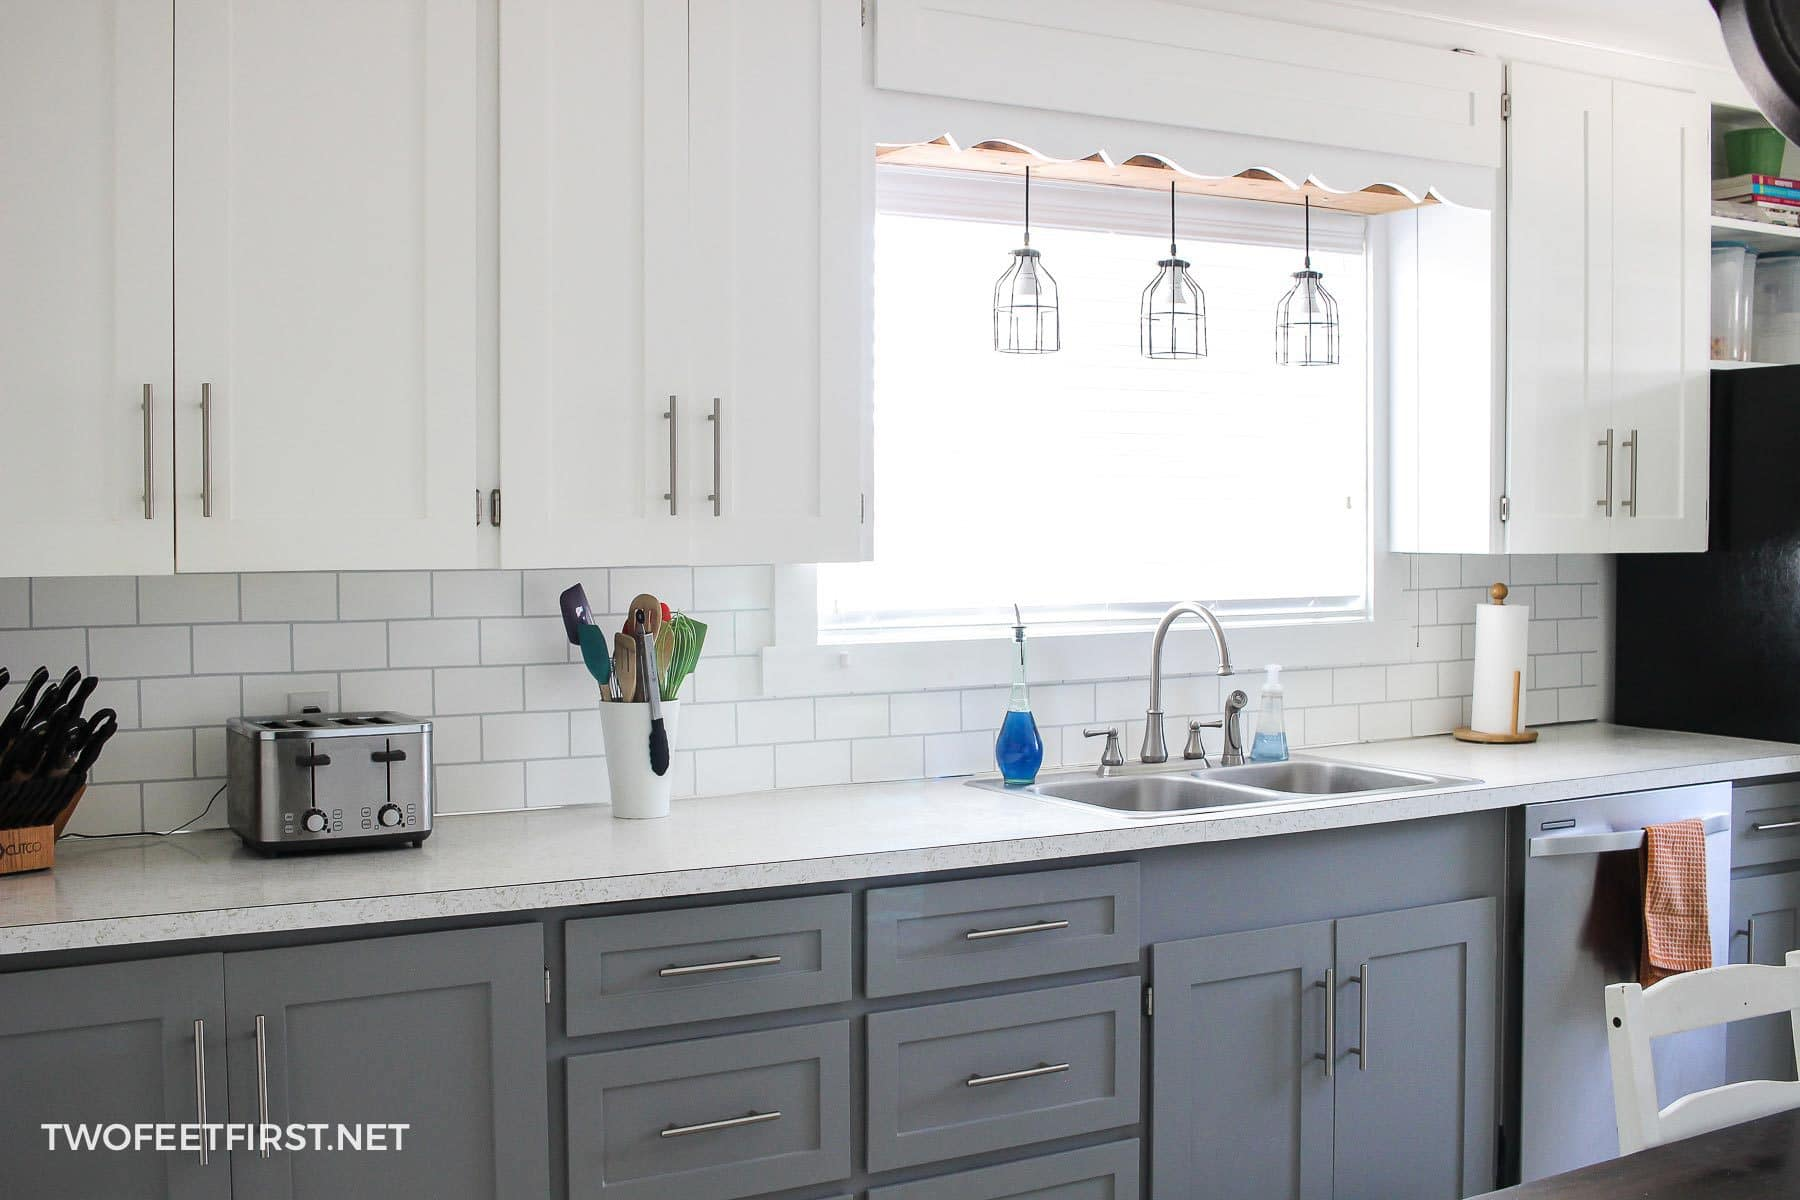 Replacing Kitchen Cabinets On A Budget Update Kitchen Cabinets Without Replacing Them By Adding Trim